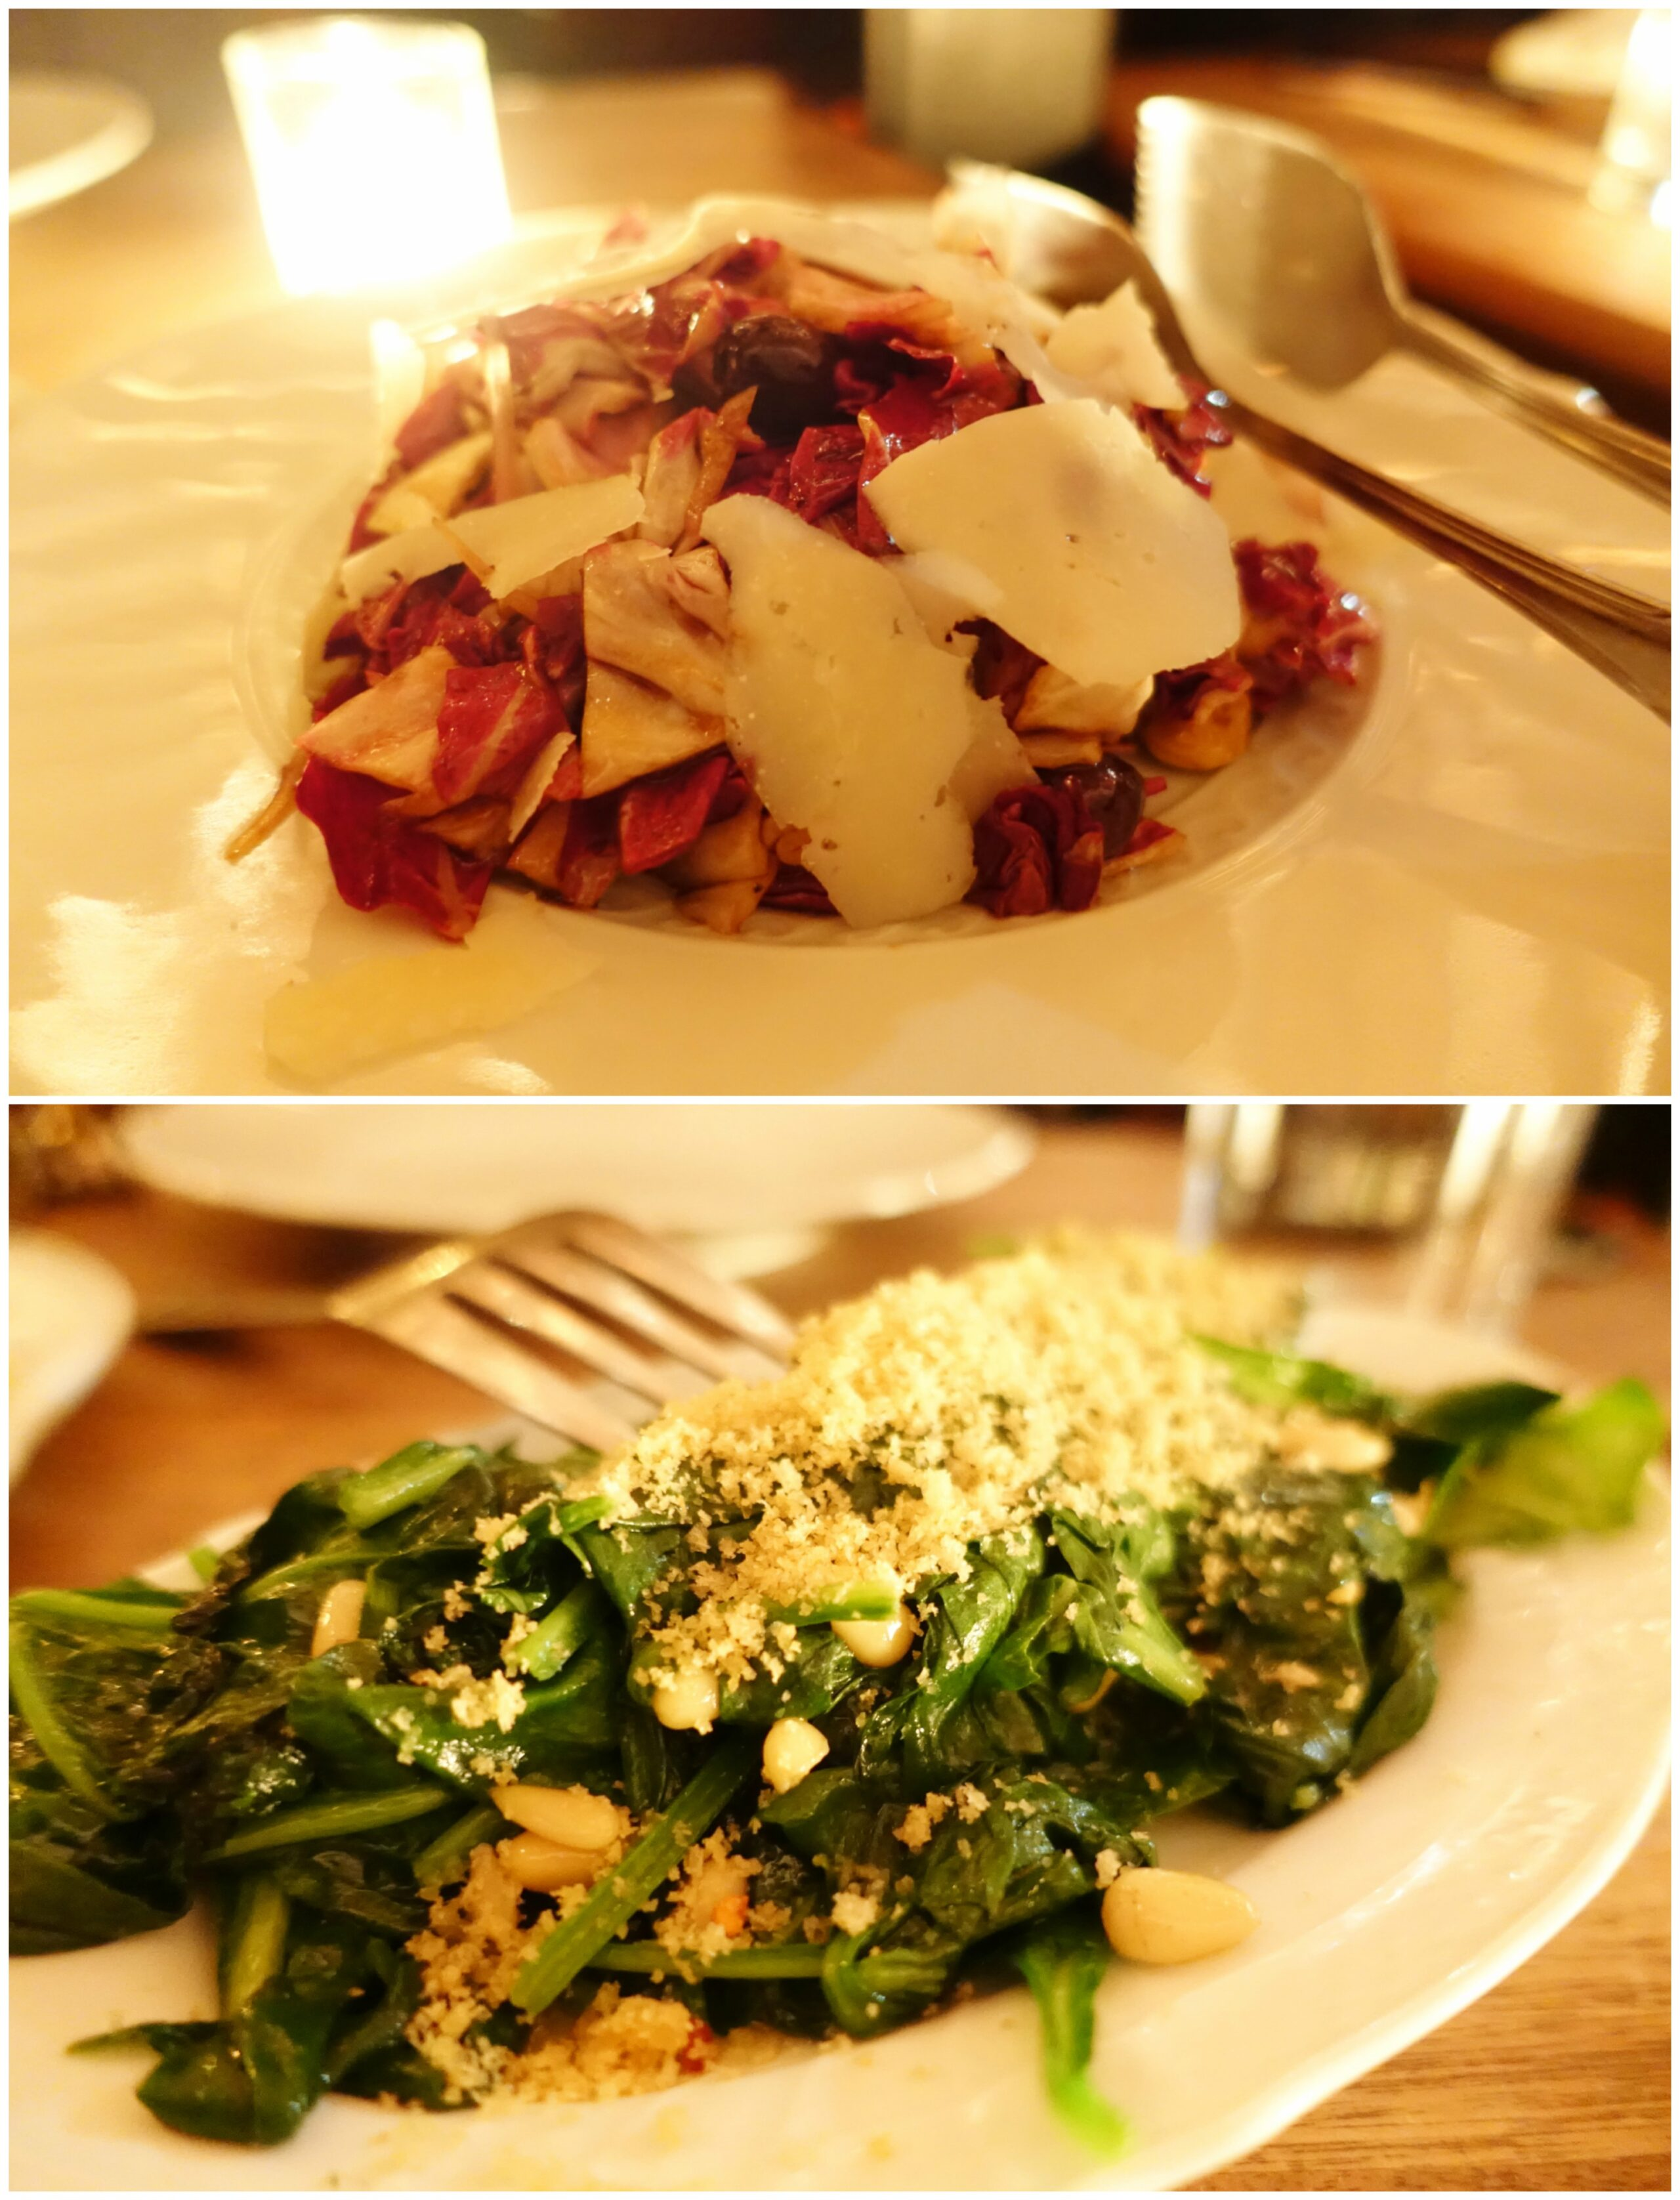 Radicchio Salad & Sauteed Spinach - The Tasting Kitchen - Venice, Los Angeles, California